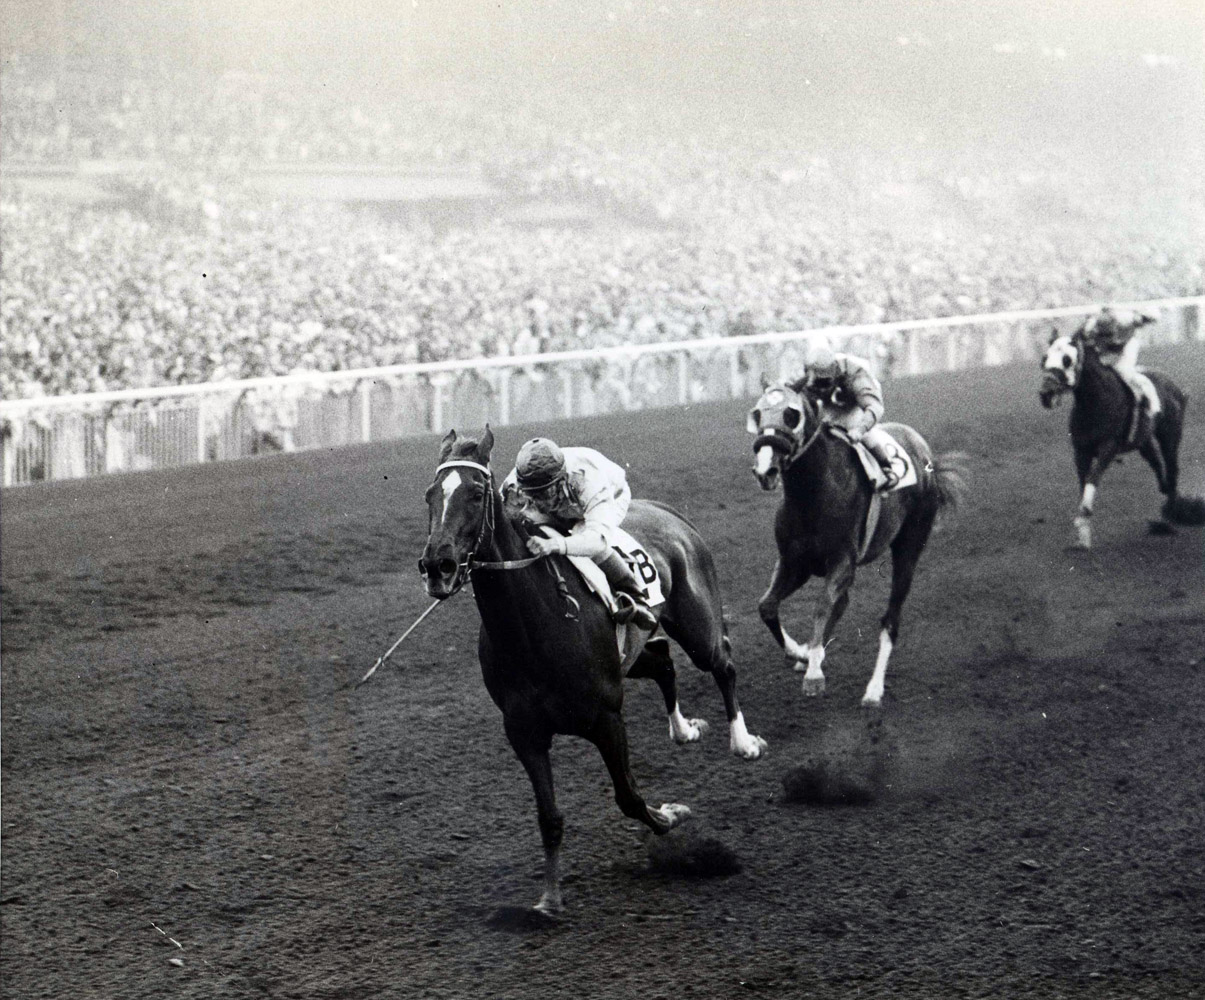 Silver Spoon (Ray York up) winning the 1959 Santa Anita Derby (UPI Telephoto/Museum Collection)